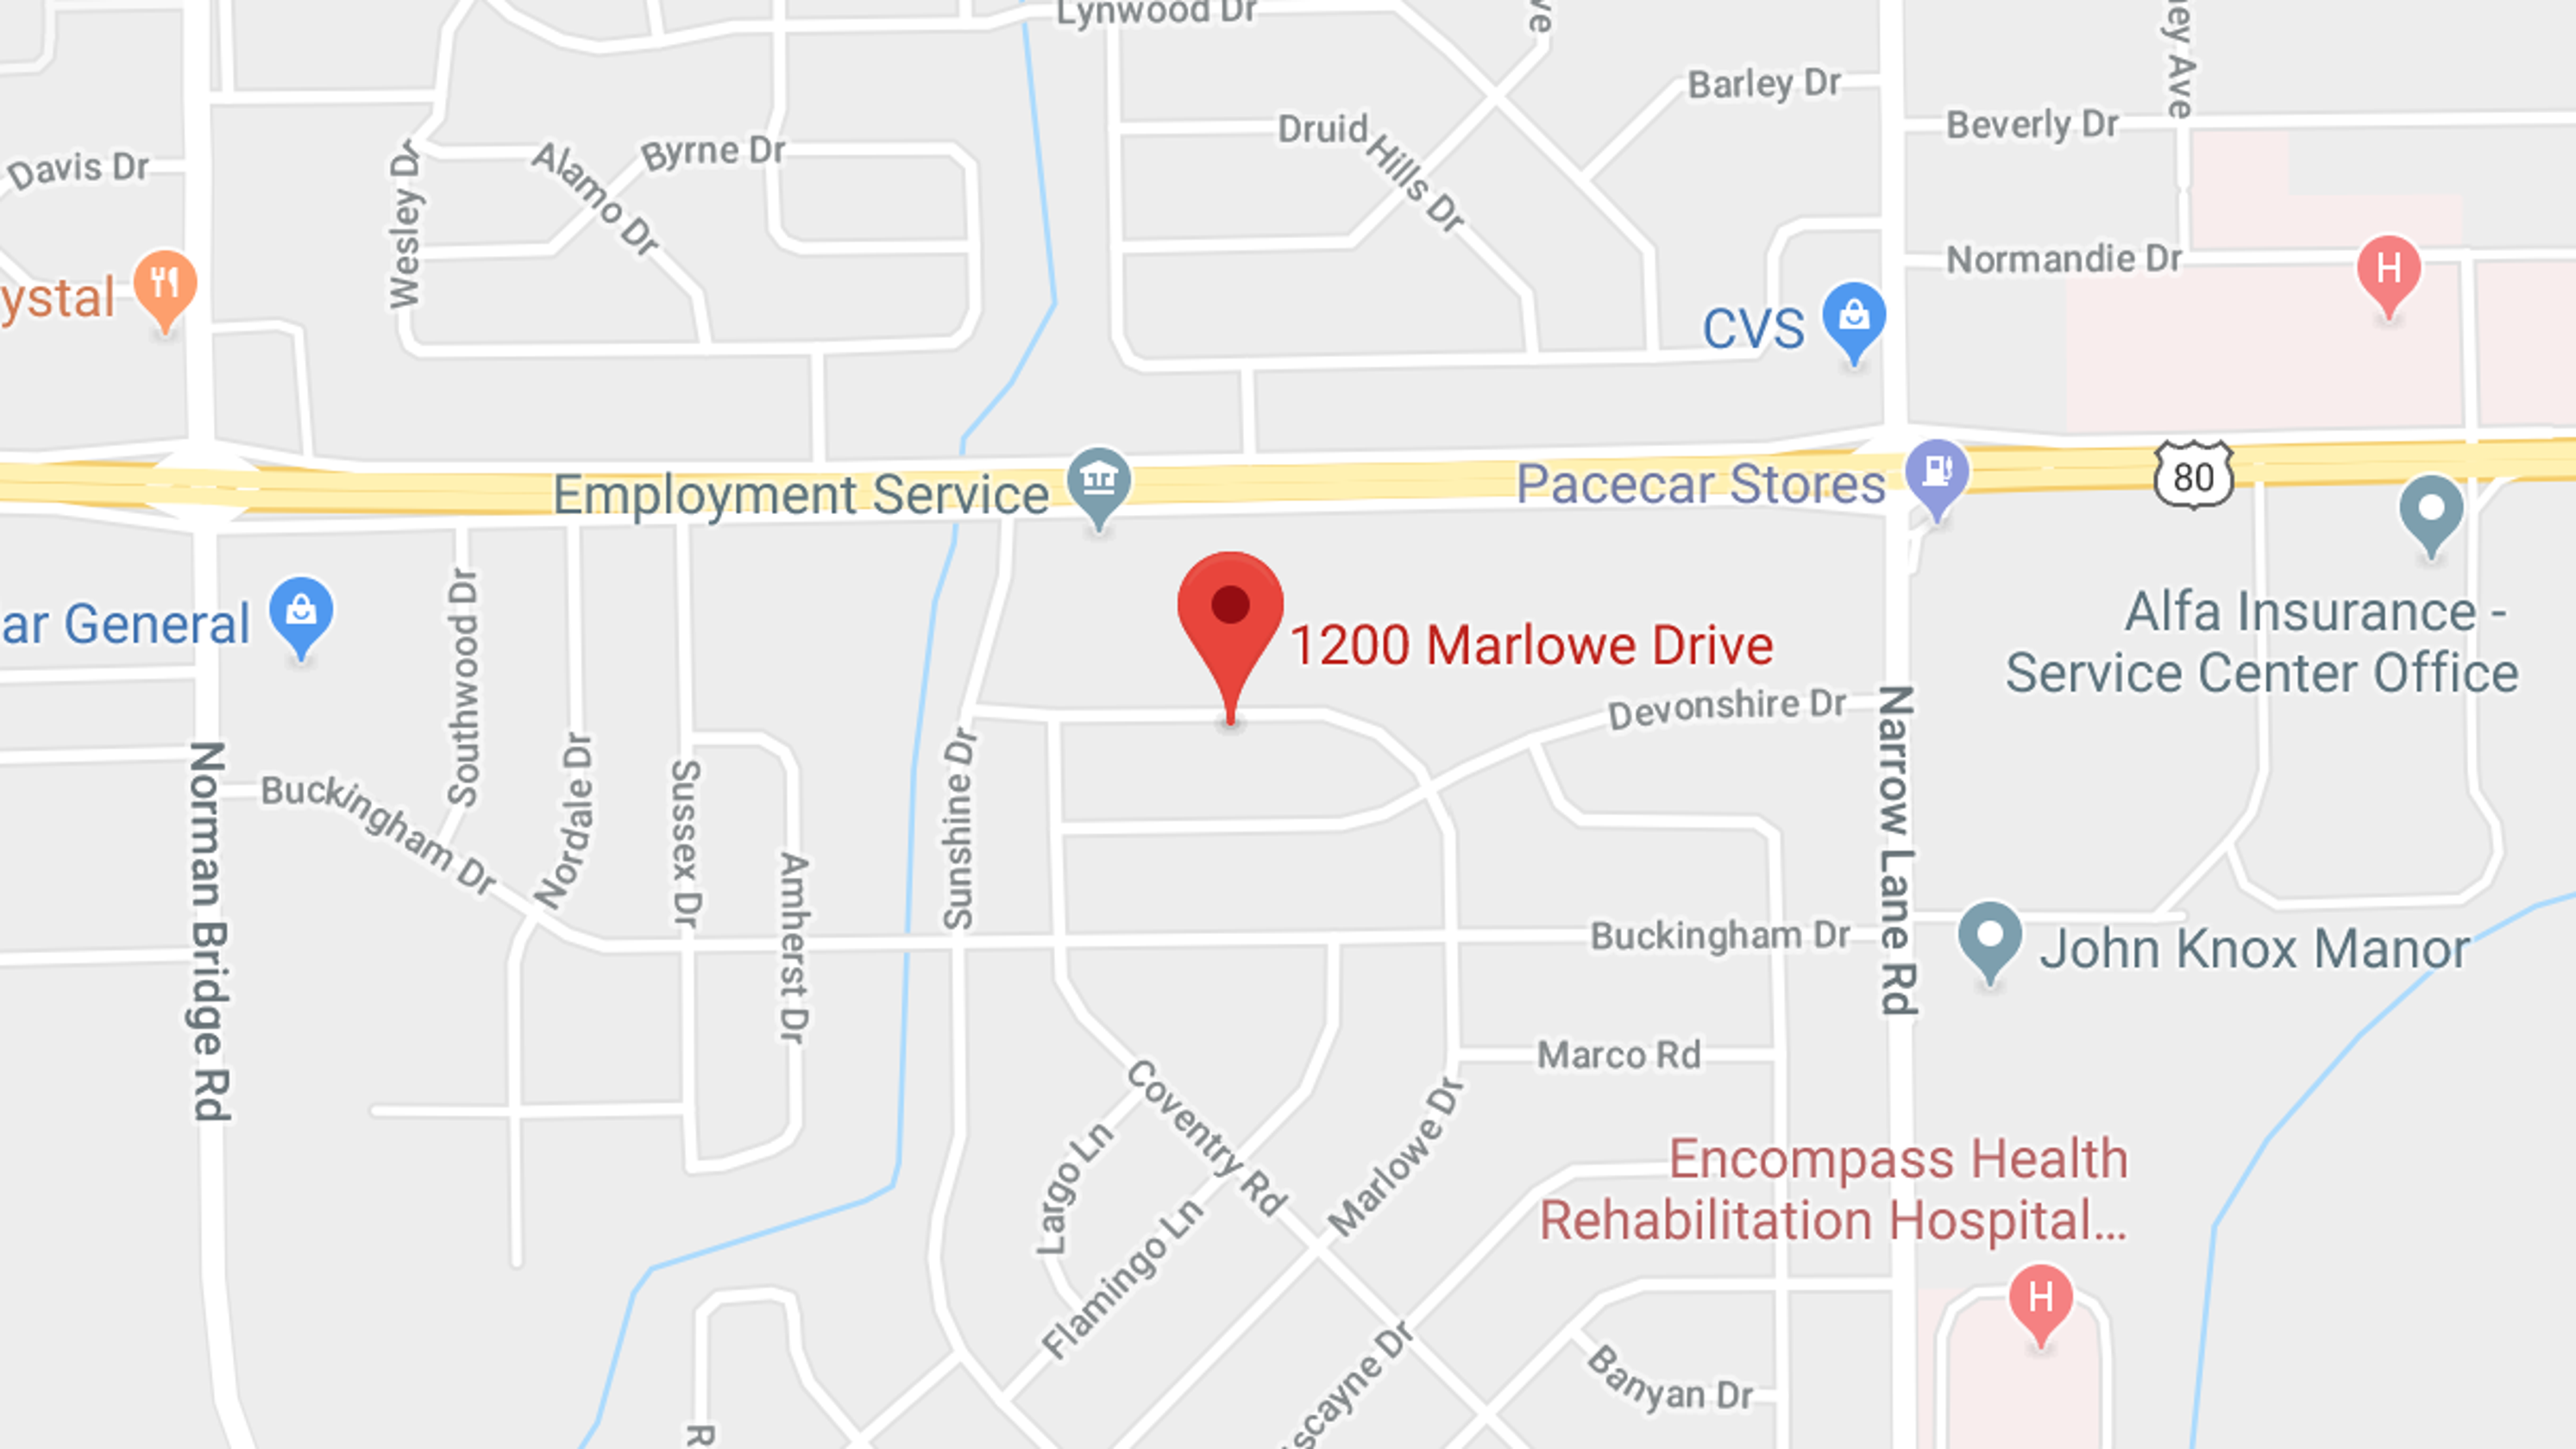 Montgomery woman killed, another injured in Marlowe Drive shooting